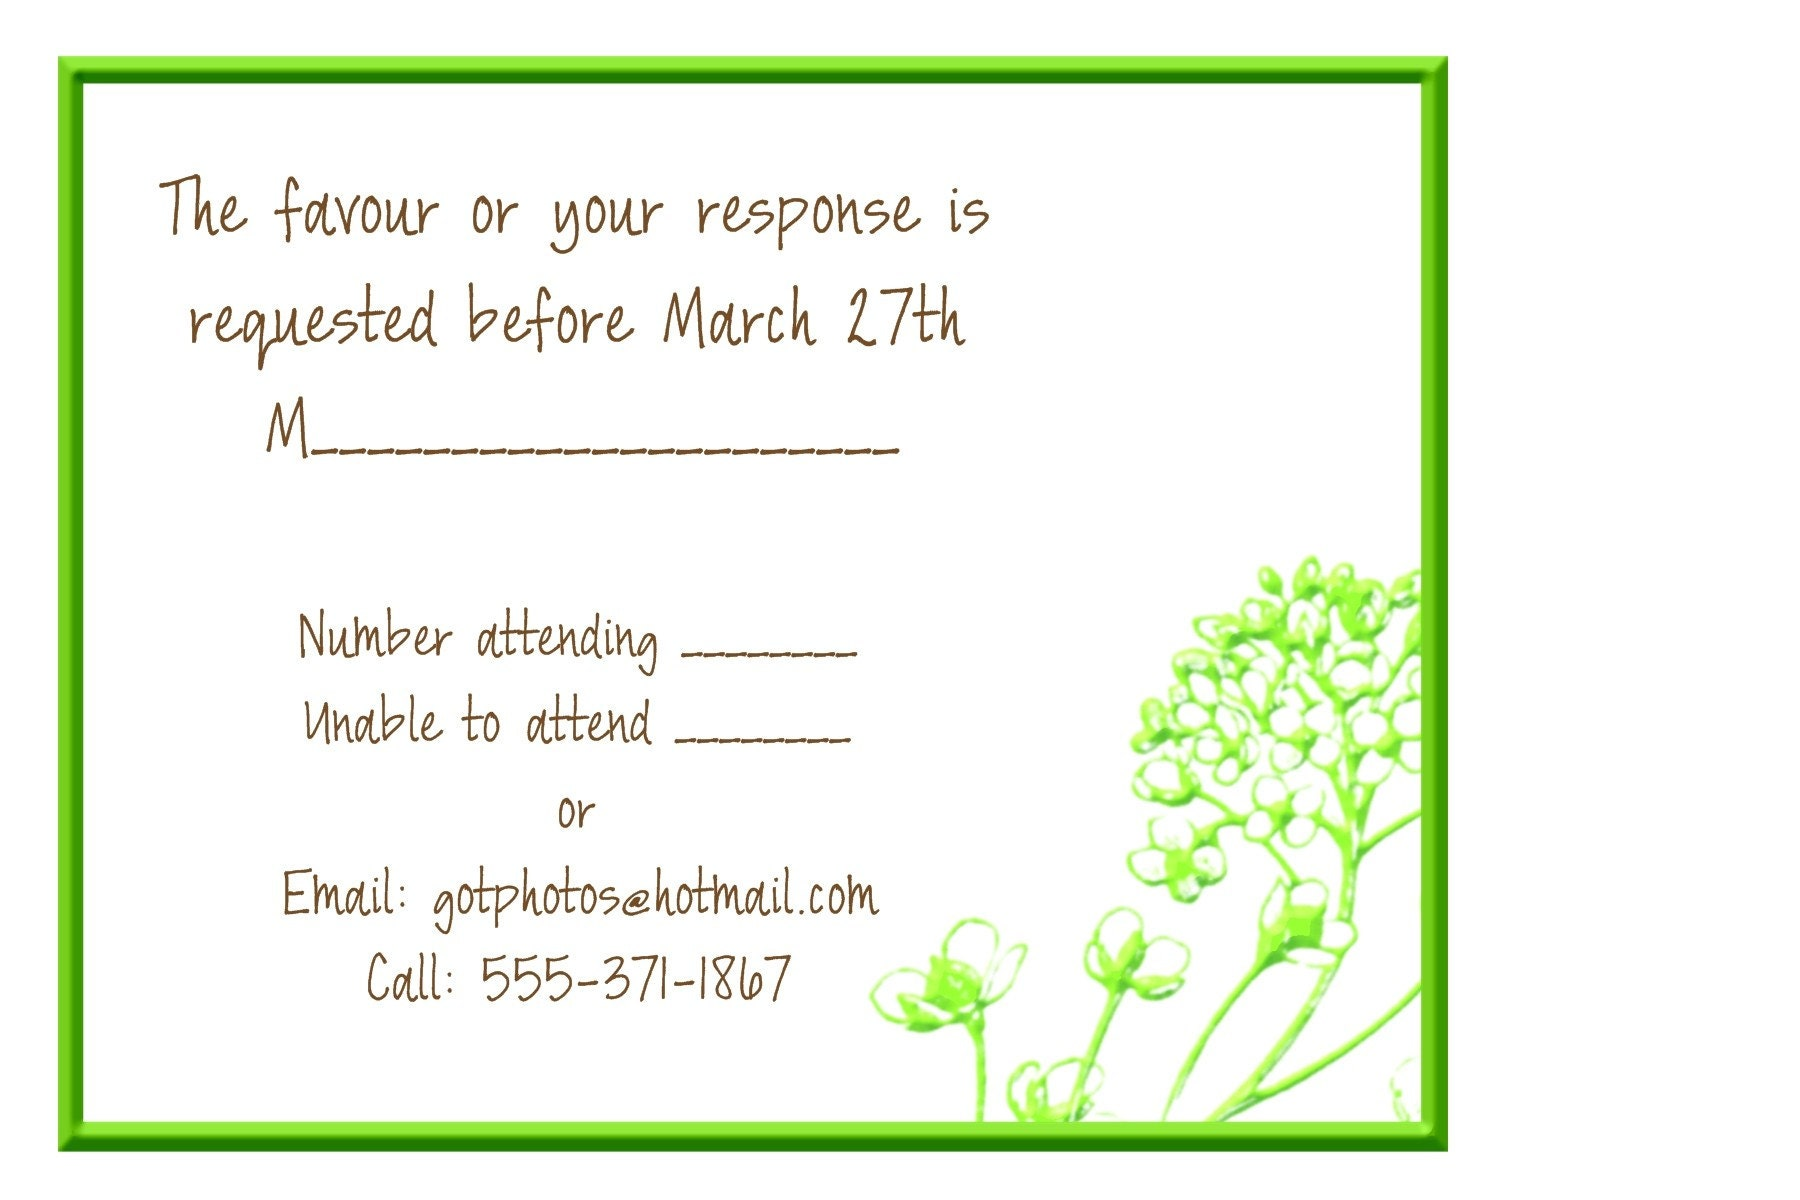 Wedding Invitation Regrets: Samples Of Completed Rsvp Regrets To A Wedding